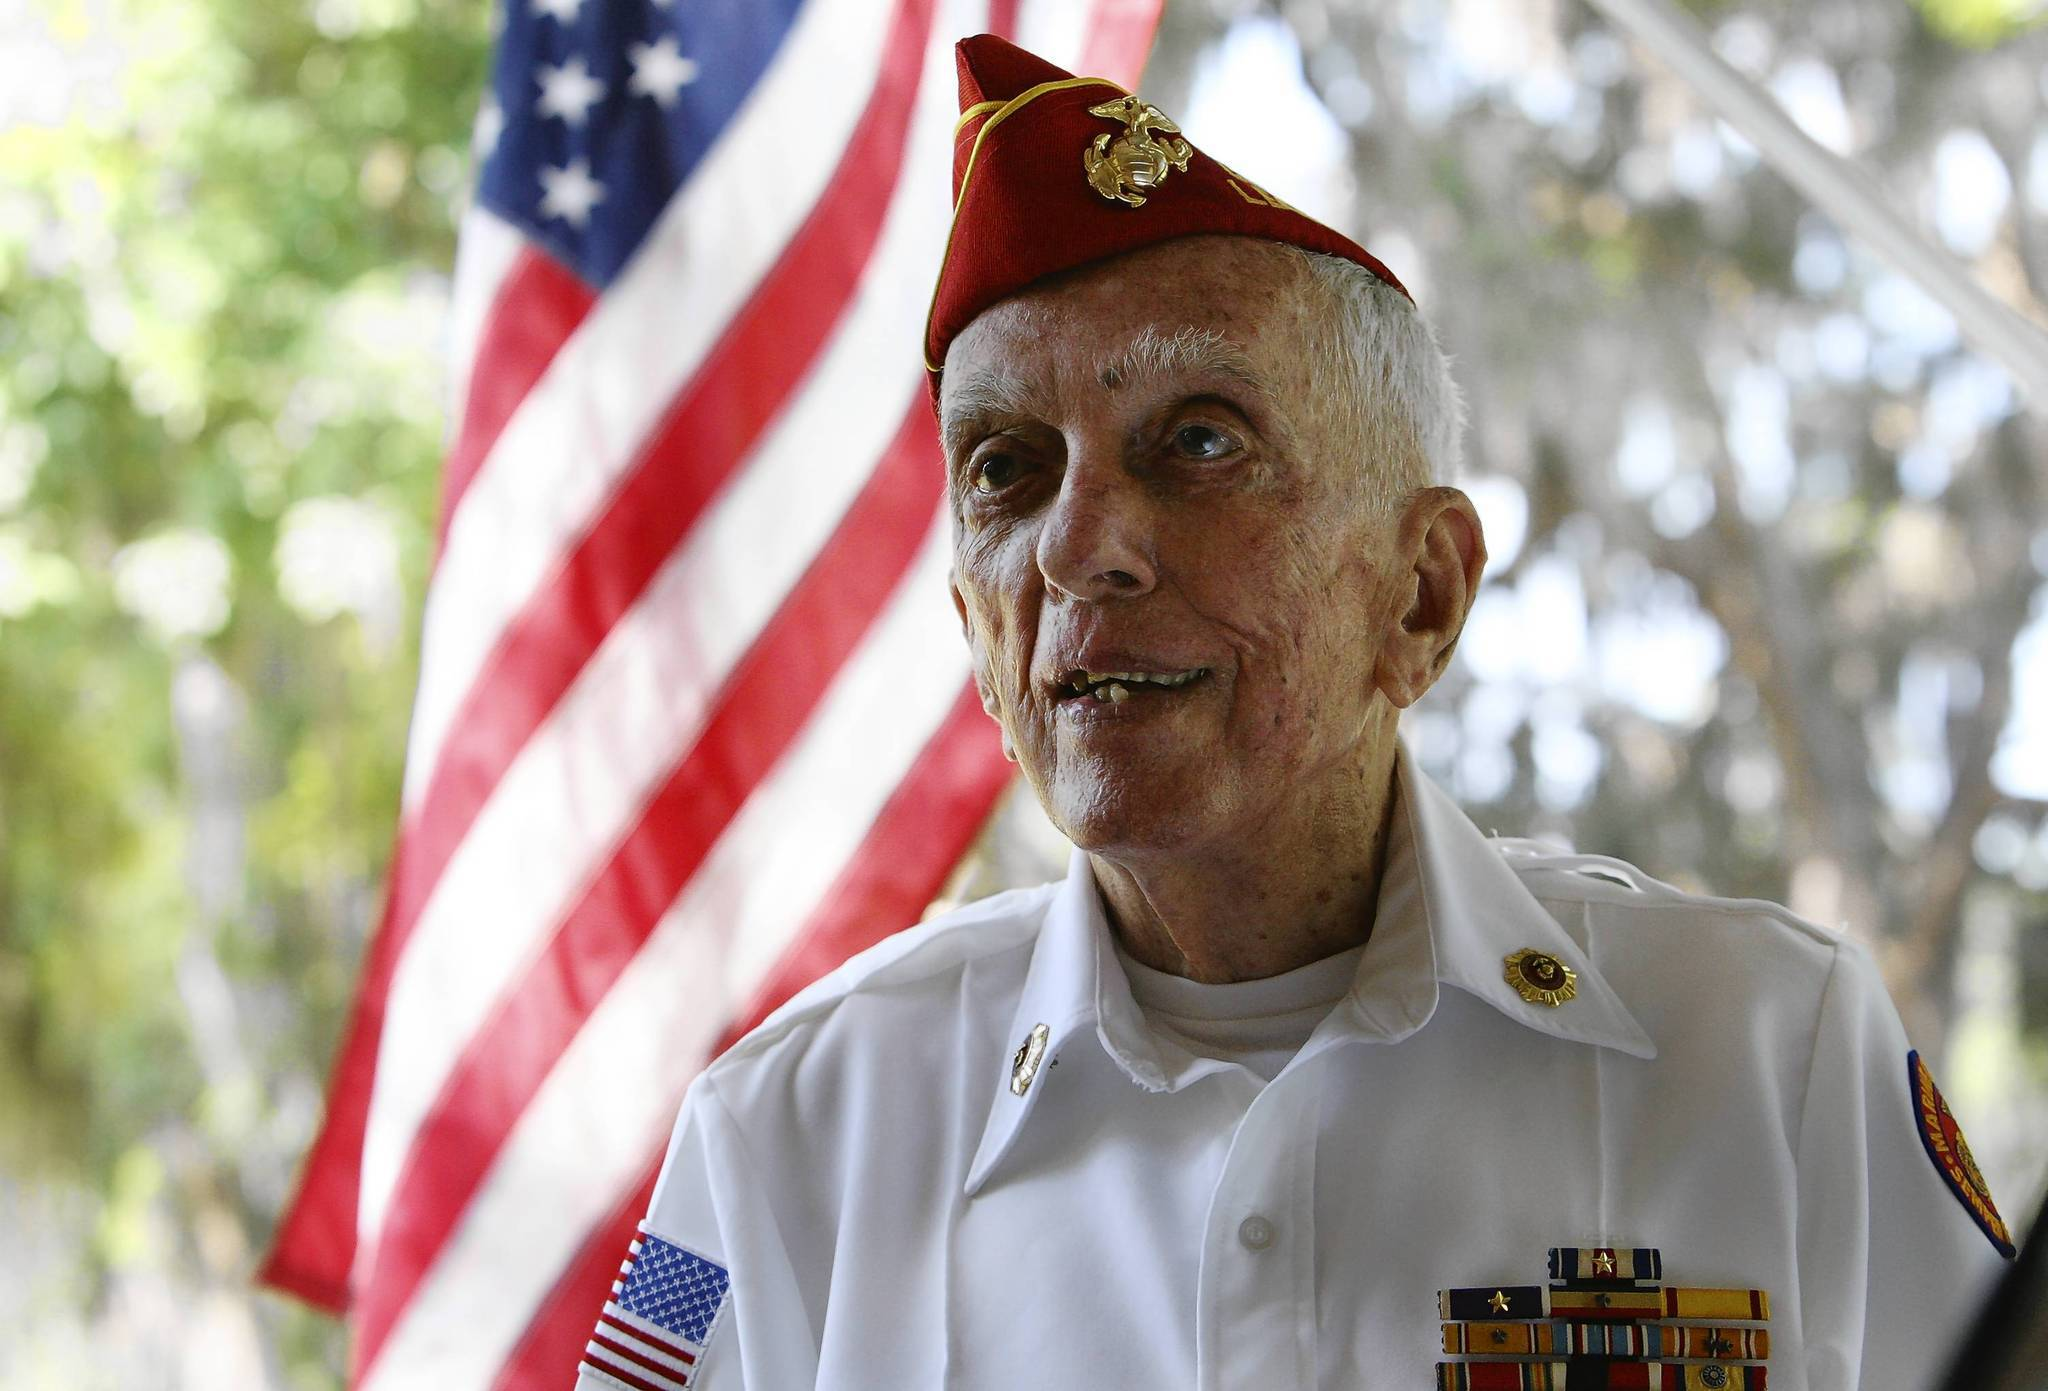 Bill Cumbaa, poses for a portrait at his home in Leesburg on Tuesday, May 8, 2012. Cumbaa, a Marine Lieutenant  took part in the Battle of Okinawa - the final and one of the bloodiest battles of World War II.  (Tom Benitez/Orlando Sentinel)